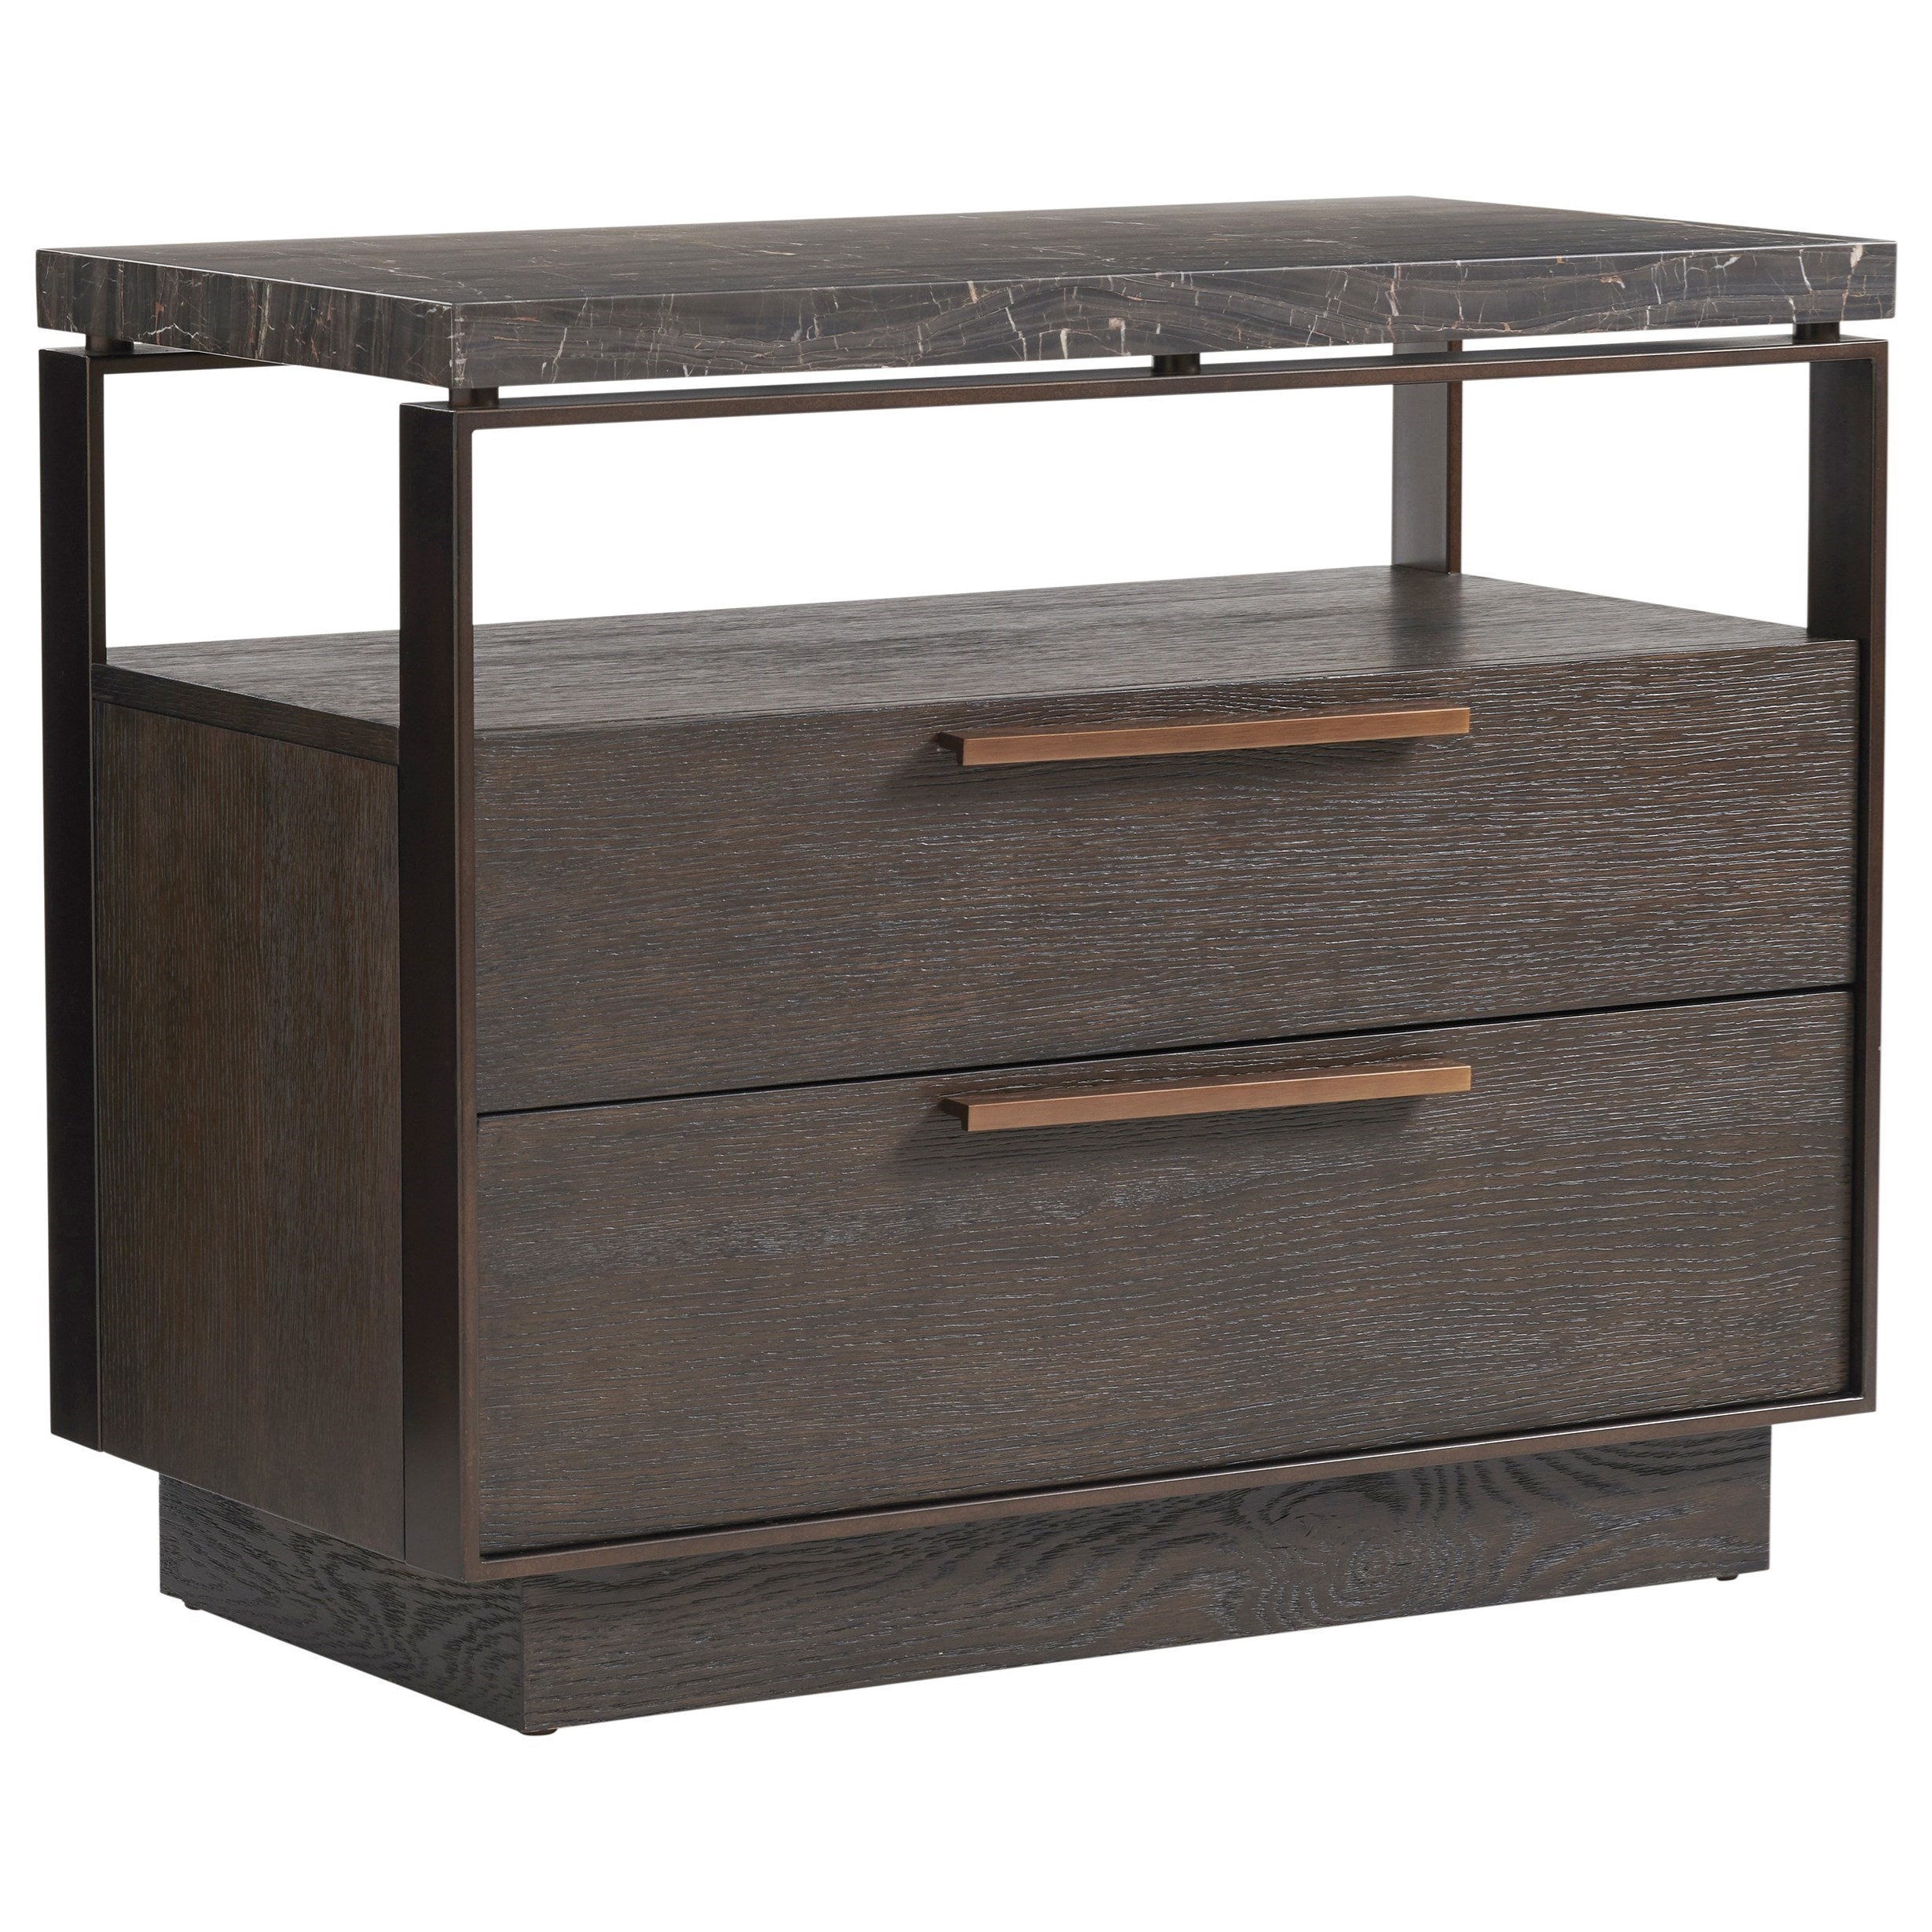 Park City Empire Pass Bachelors Chest by Barclay Butera at Baer's Furniture